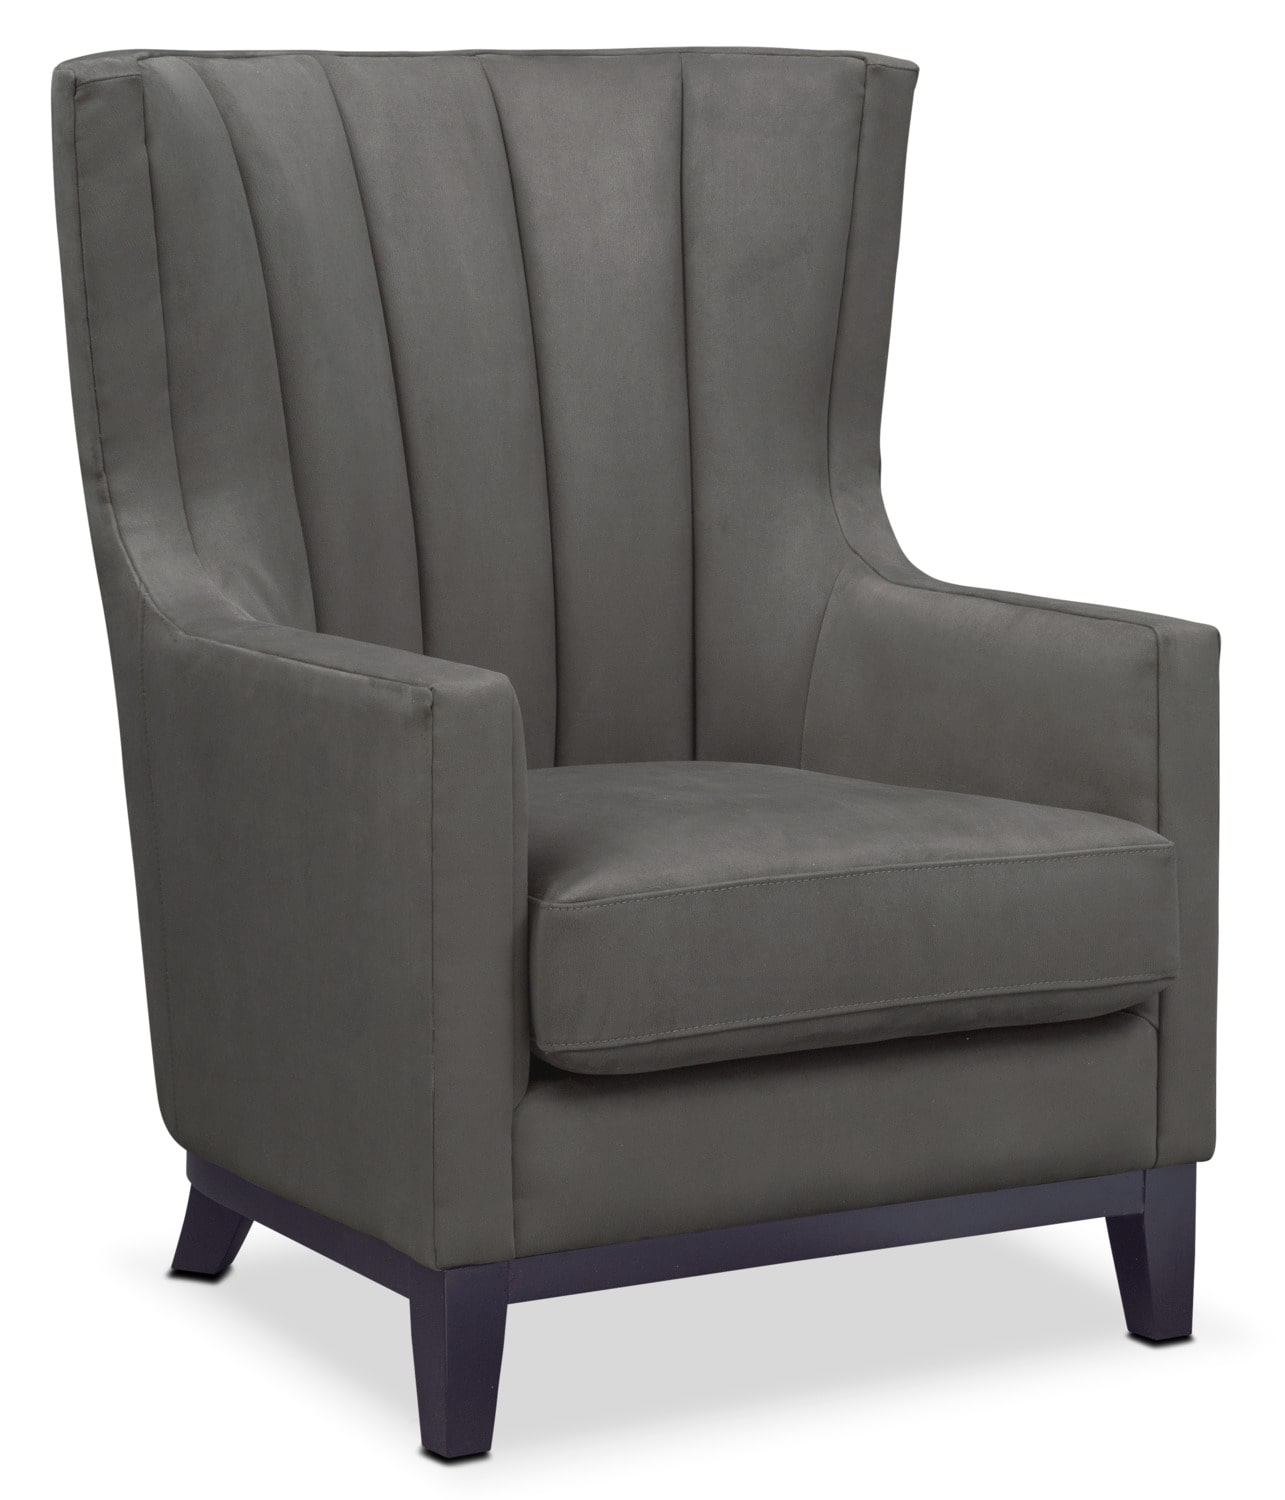 Accent Furniture For Living Room: Brianna Accent Chair - Dark Gray